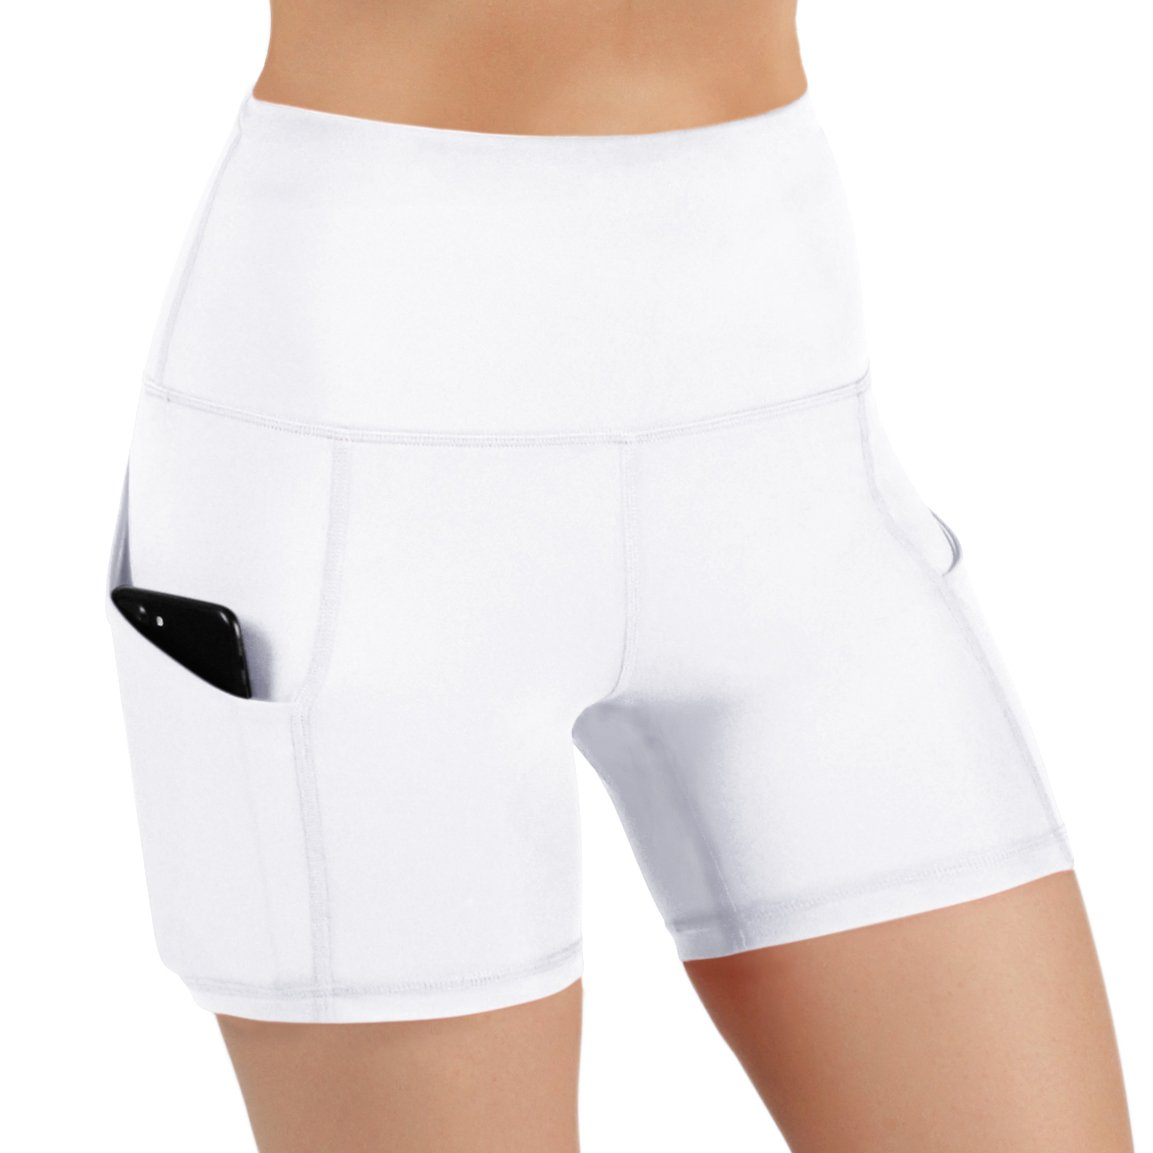 ODODOS High Waist Out Pocket Yoga Shots Tummy Control Workout Running 4 Way Stretch Yoga Shots, White, Large